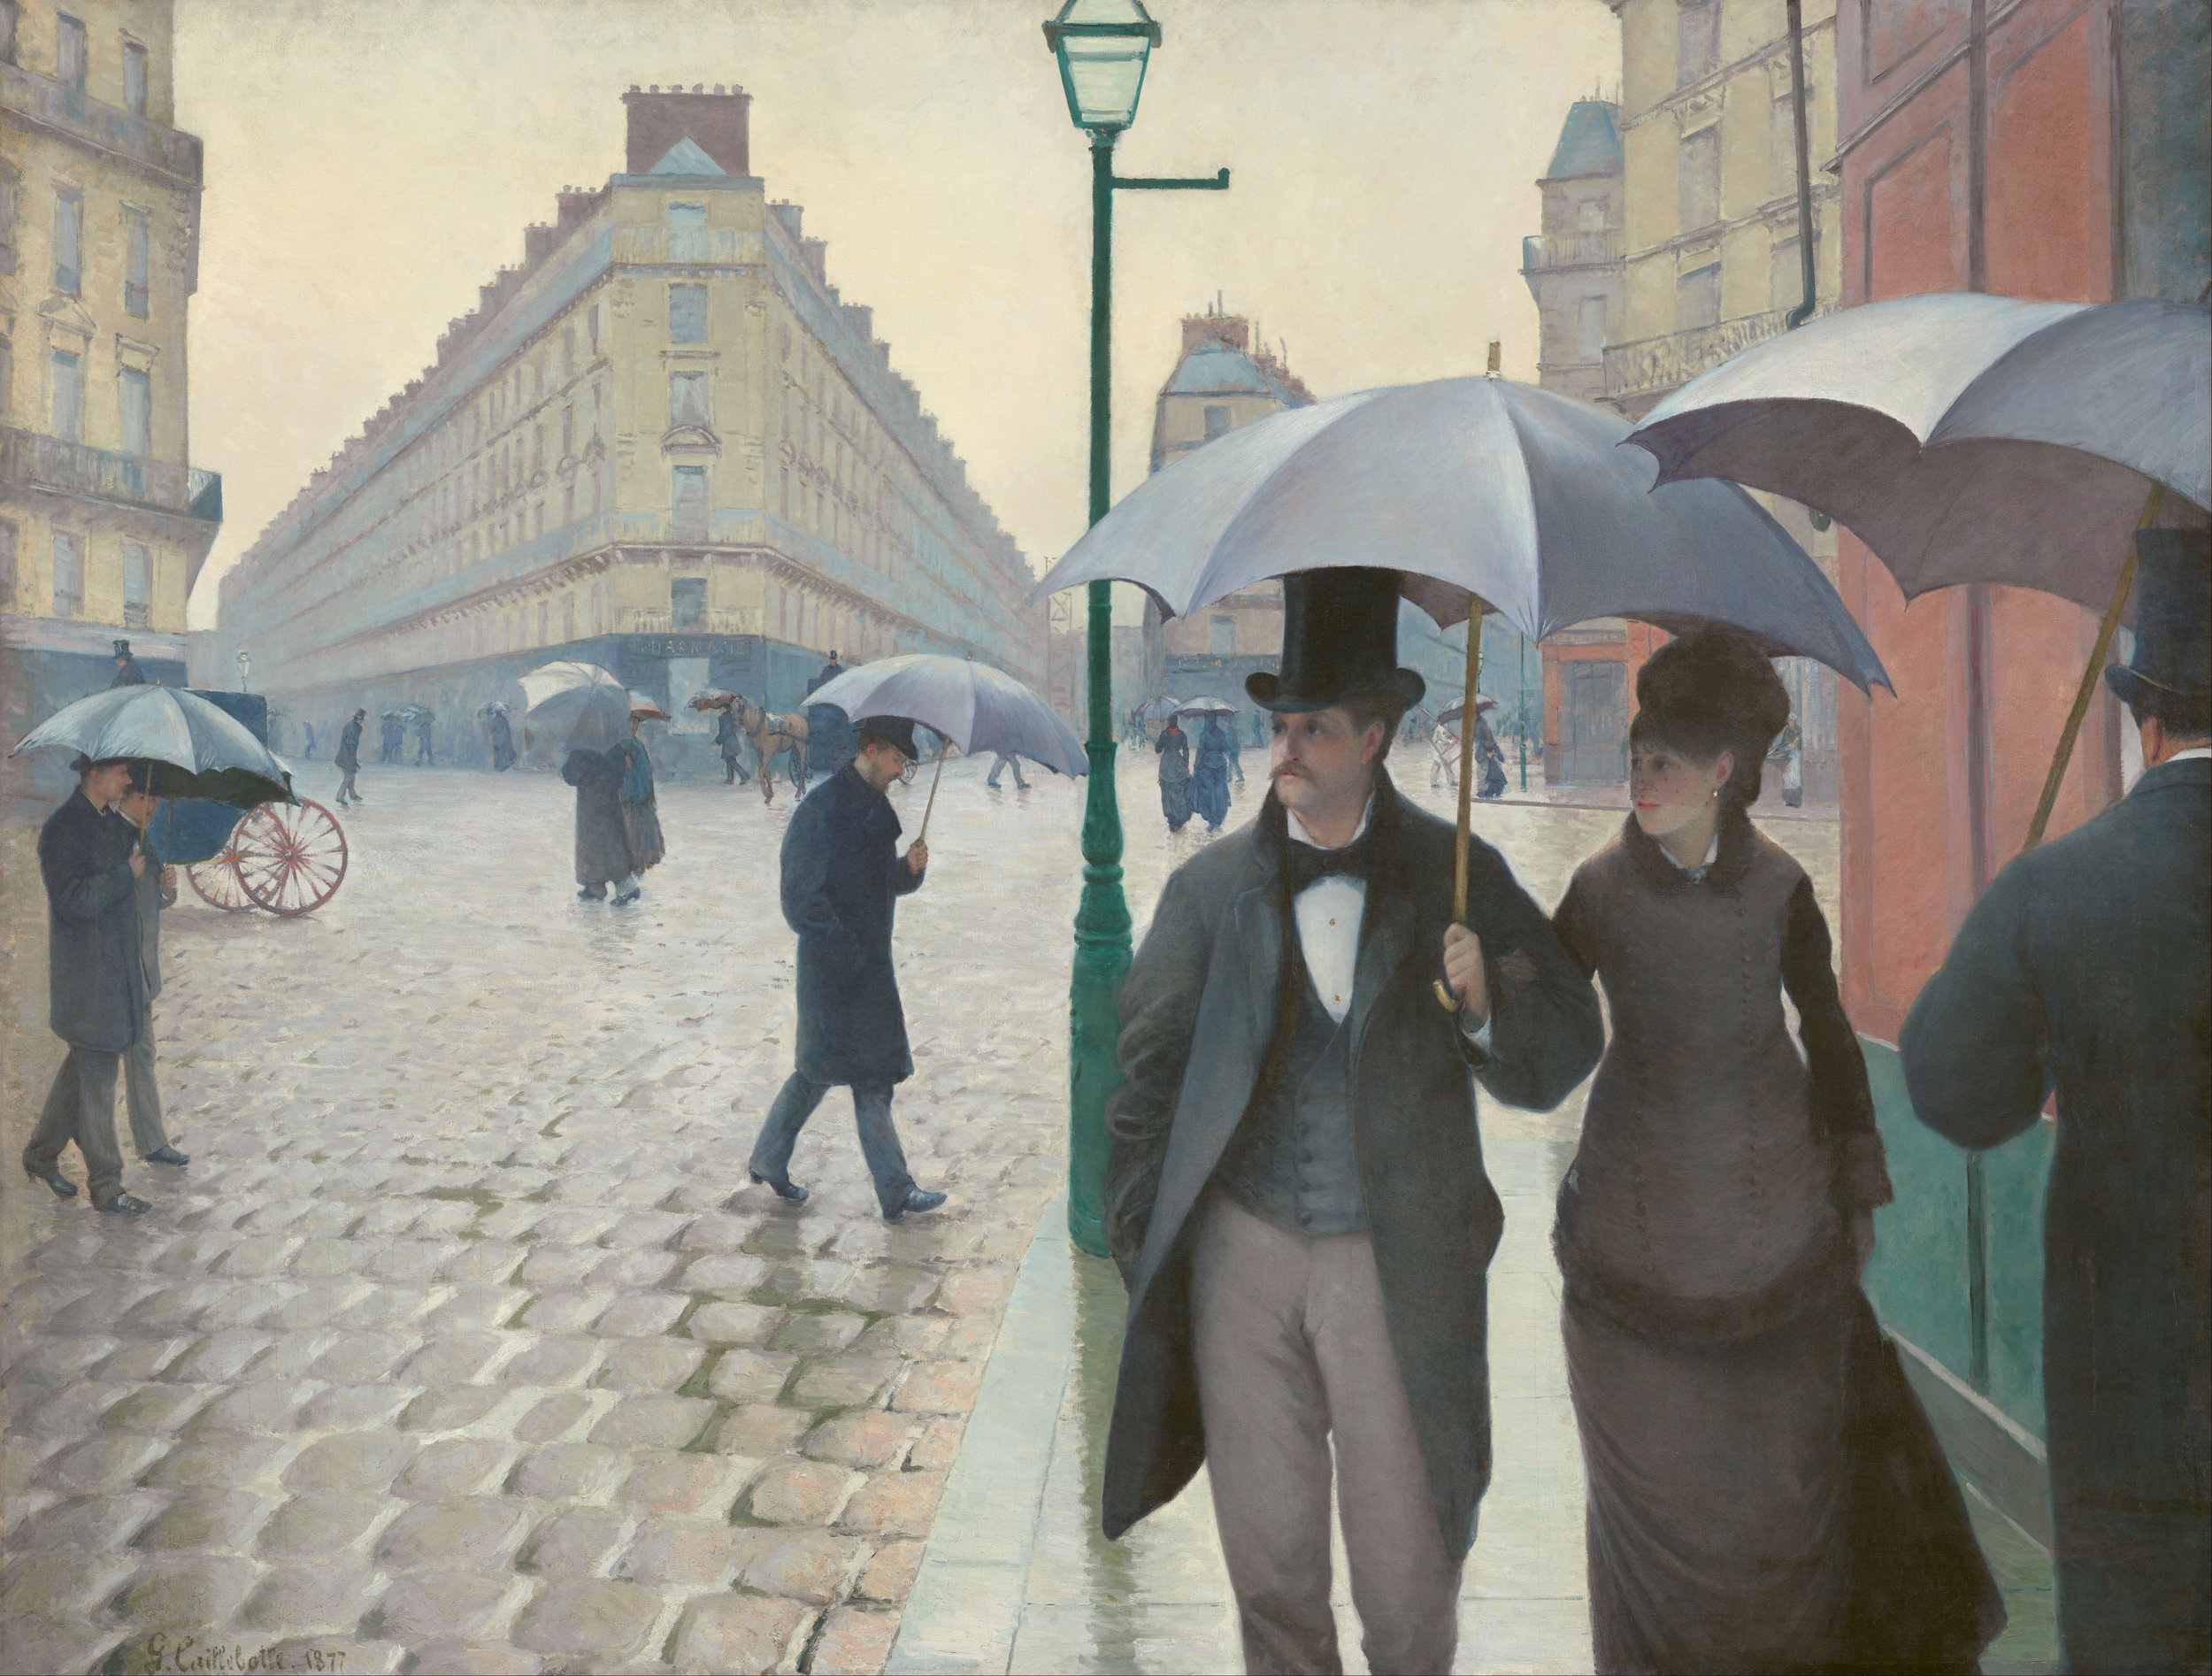 Gustave_Caillebotte_-_Paris_Street;_Rainy_Day_-_Google_Art_Project.jpg